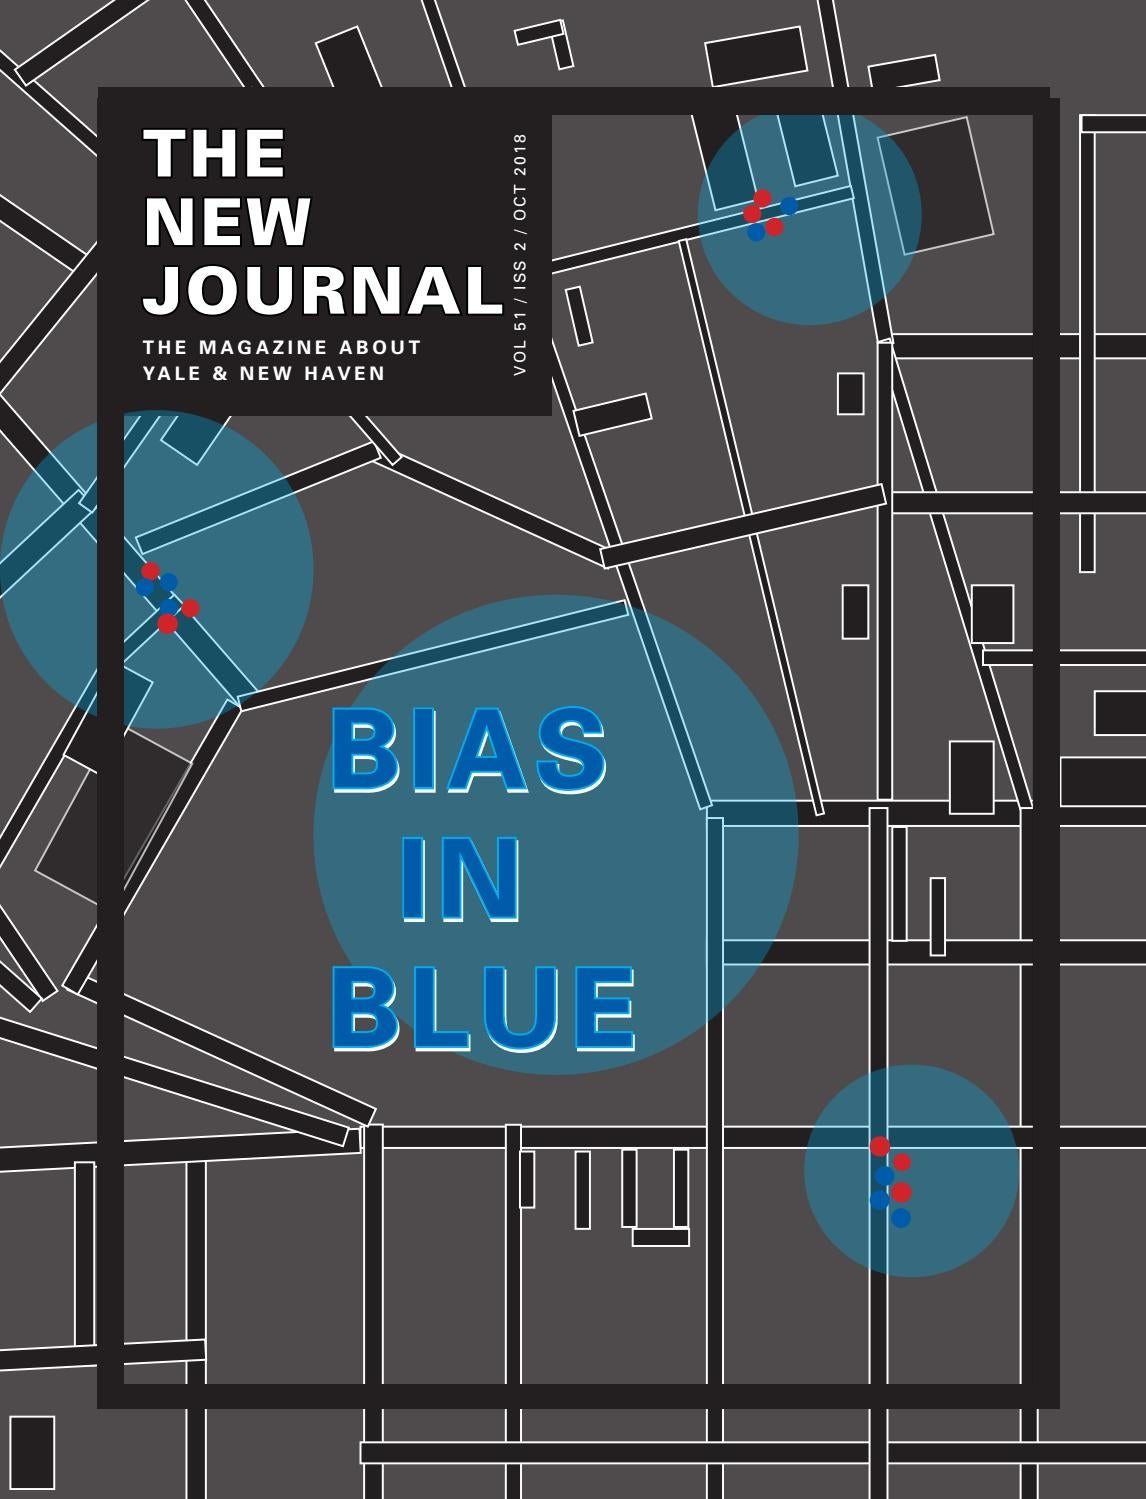 volume 51 issue 2 by the new journal at yale issuu rh issuu com